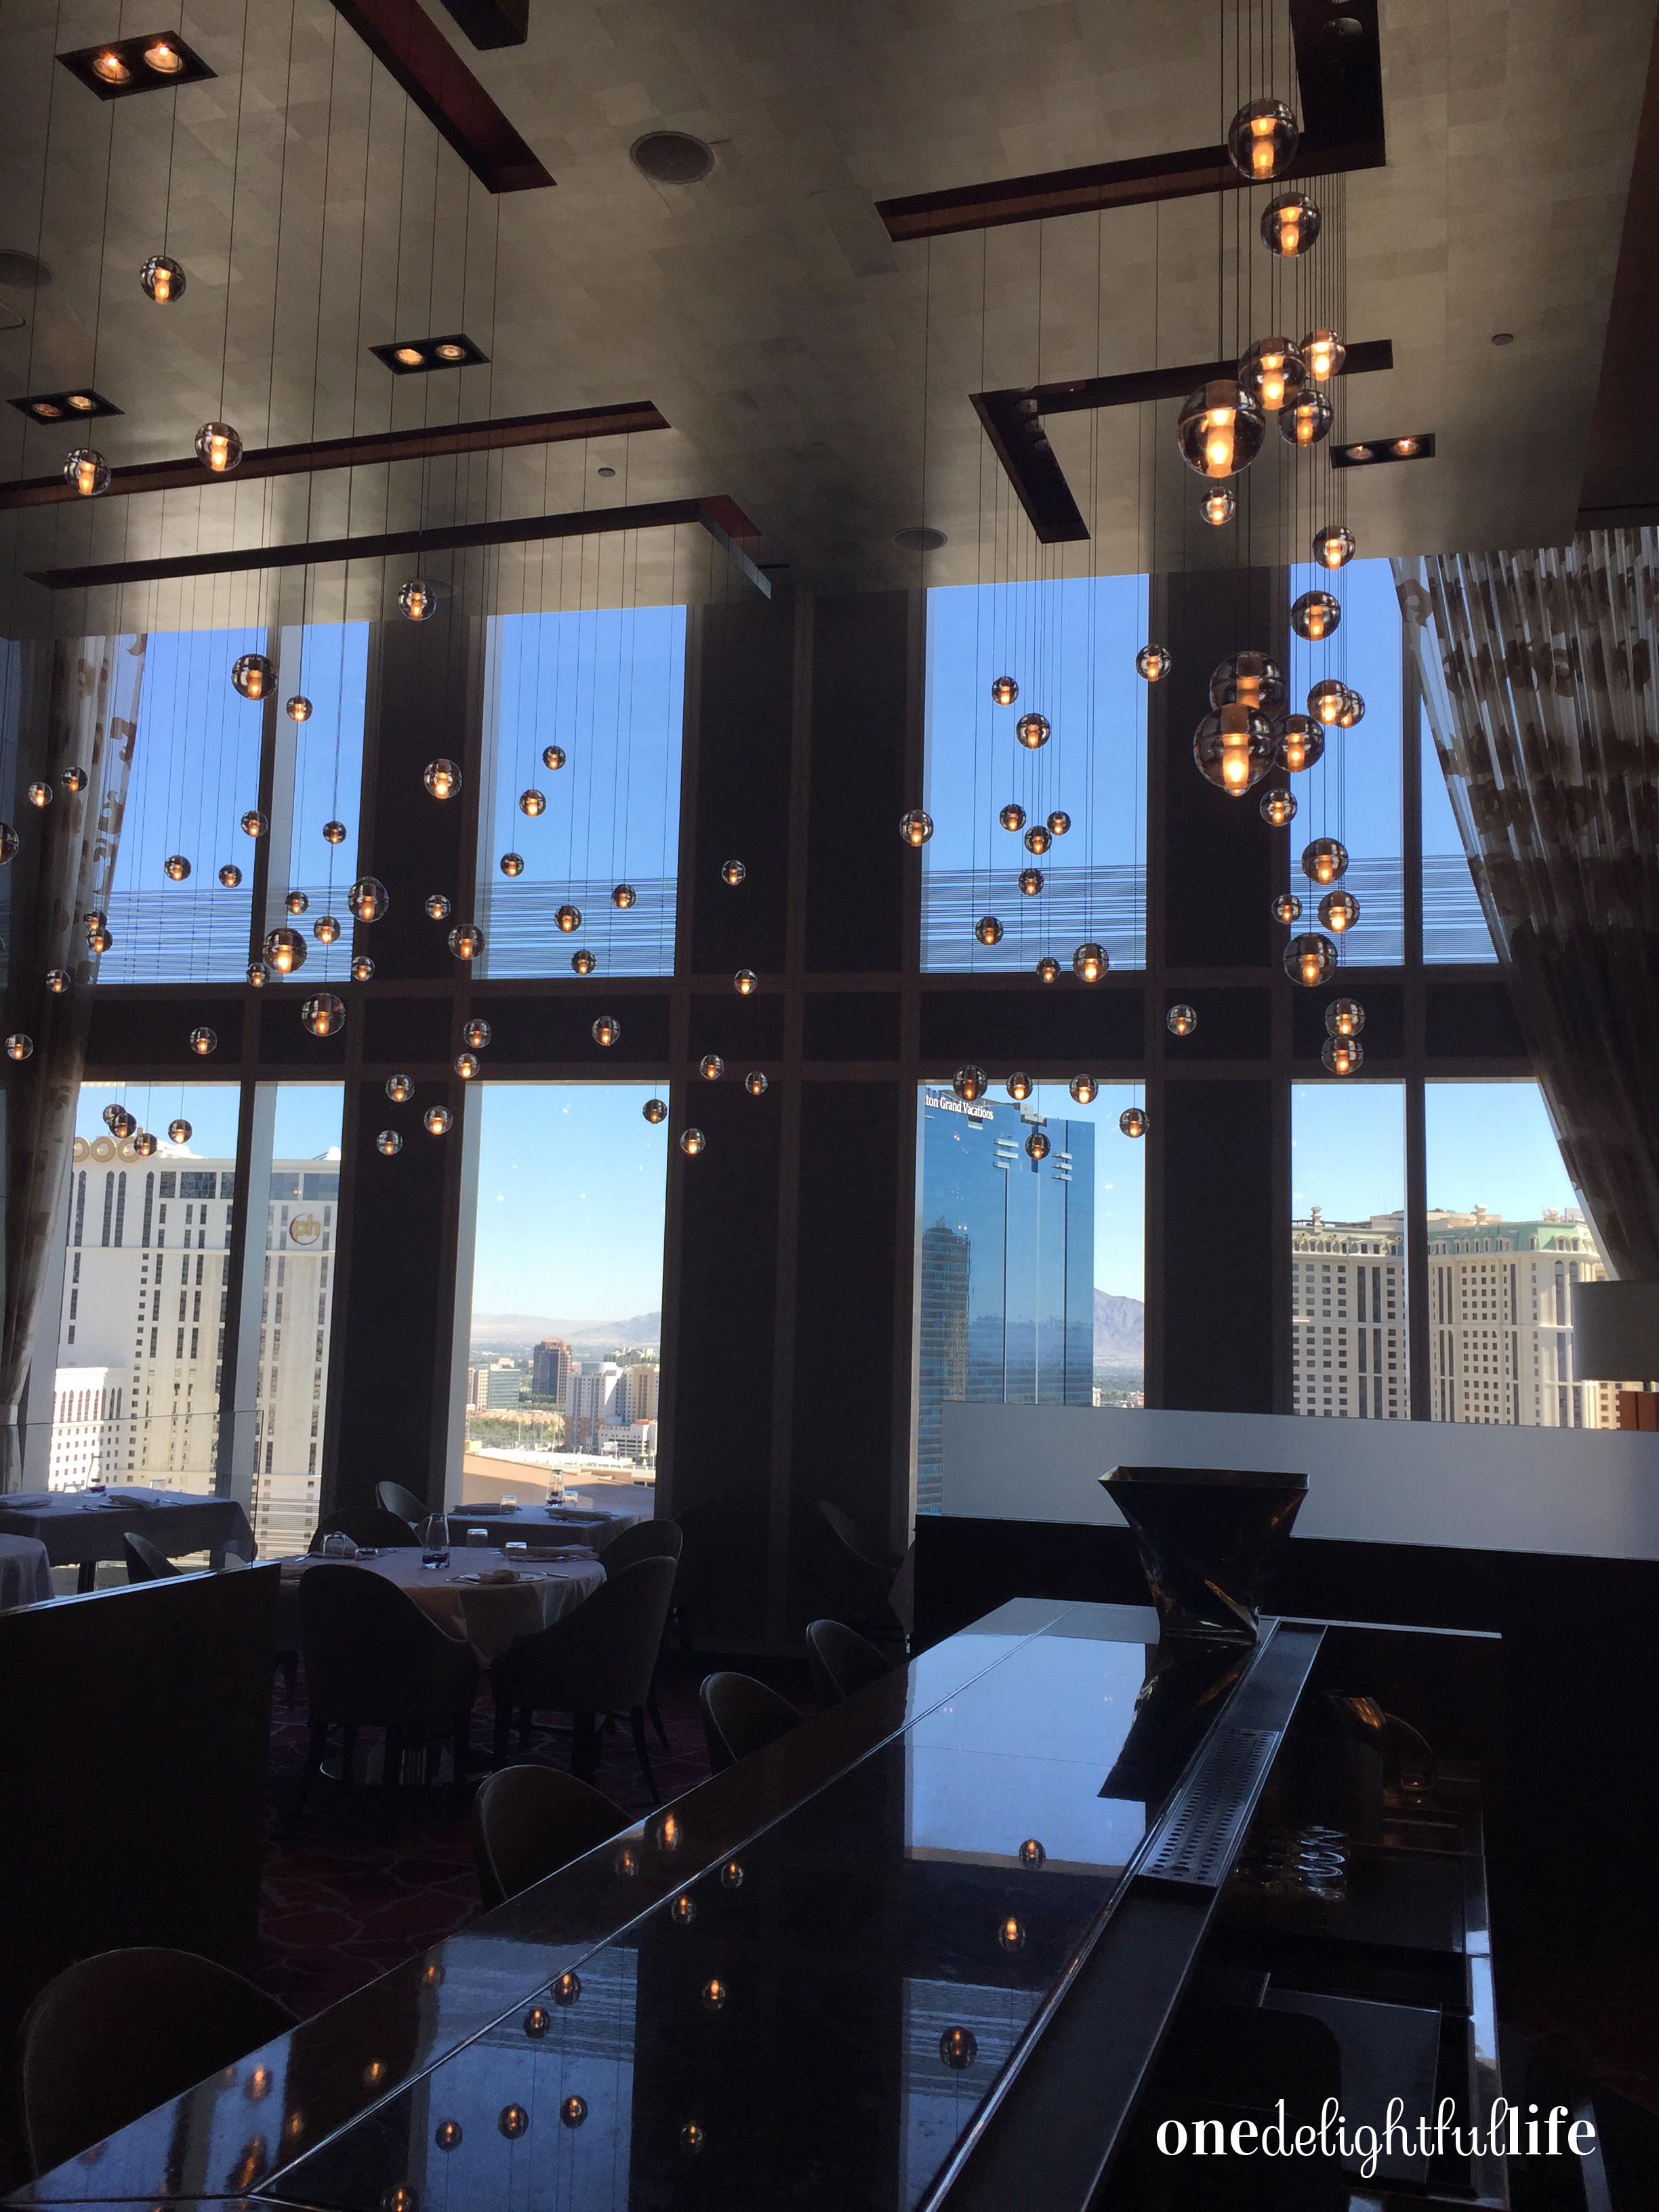 Sometimes it's fun to leave the Bellagio and check out other hotels and features on The Strip. This photo was taken inside the Mandarin Oriental hotel restaurant, a stop on the Bellagio free tram.